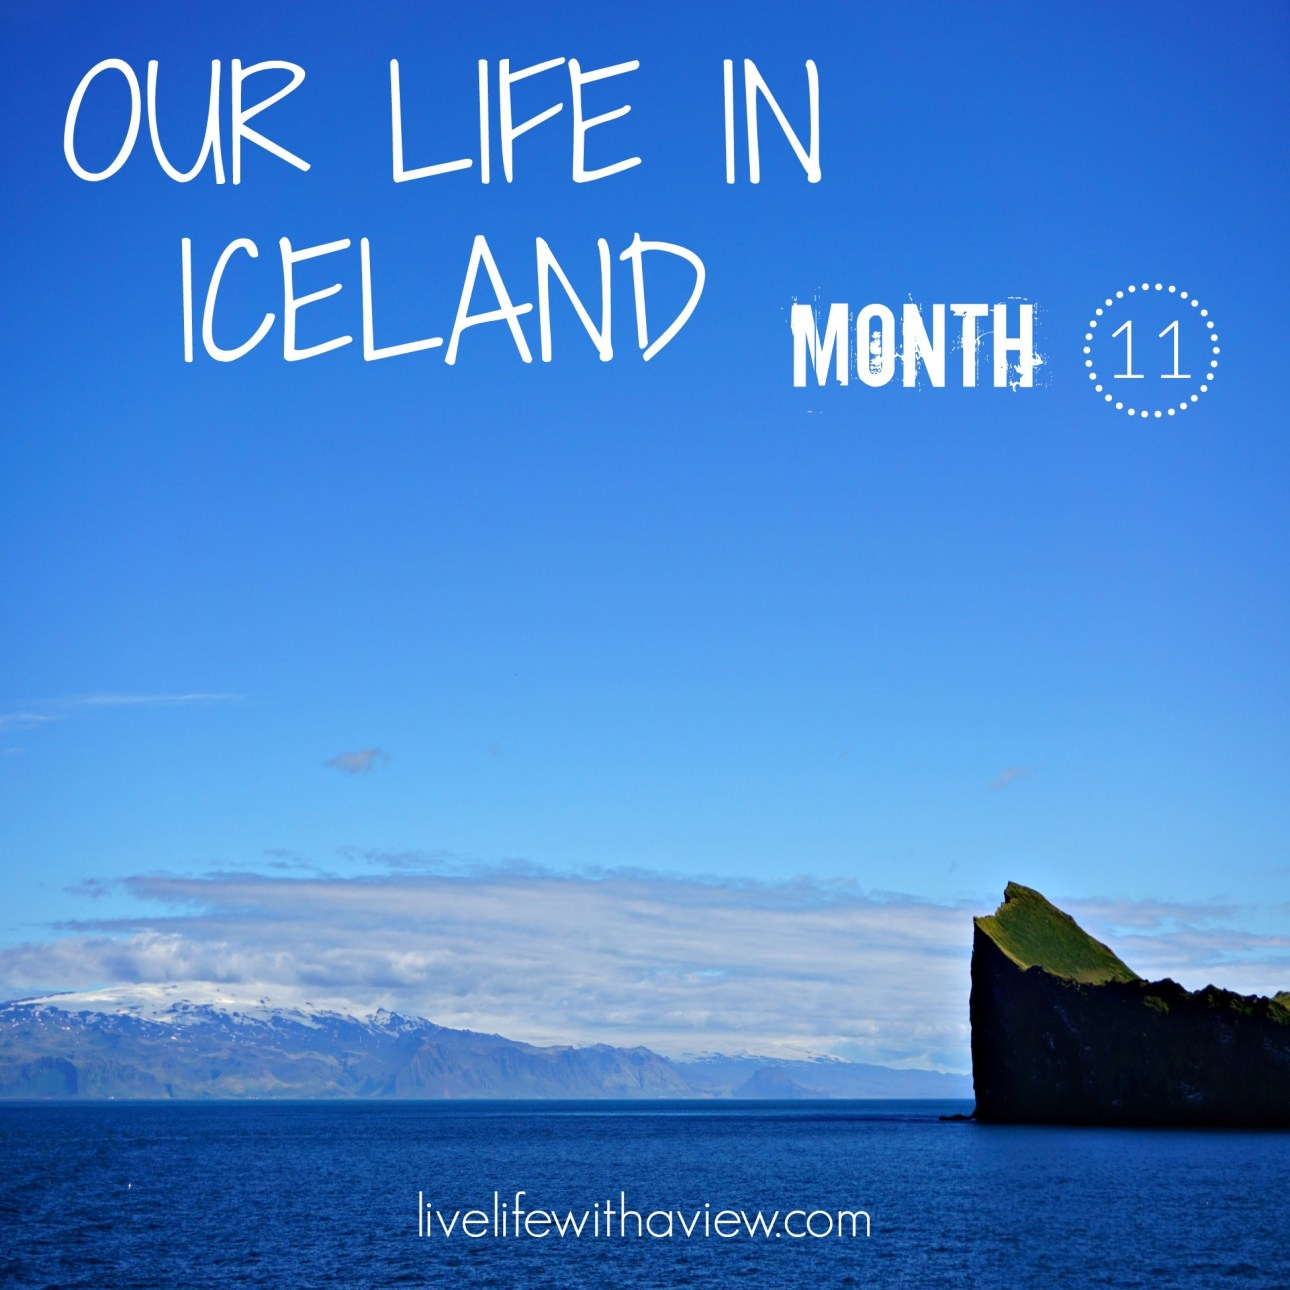 Our Life in Iceland - Month 11 | Life With a View